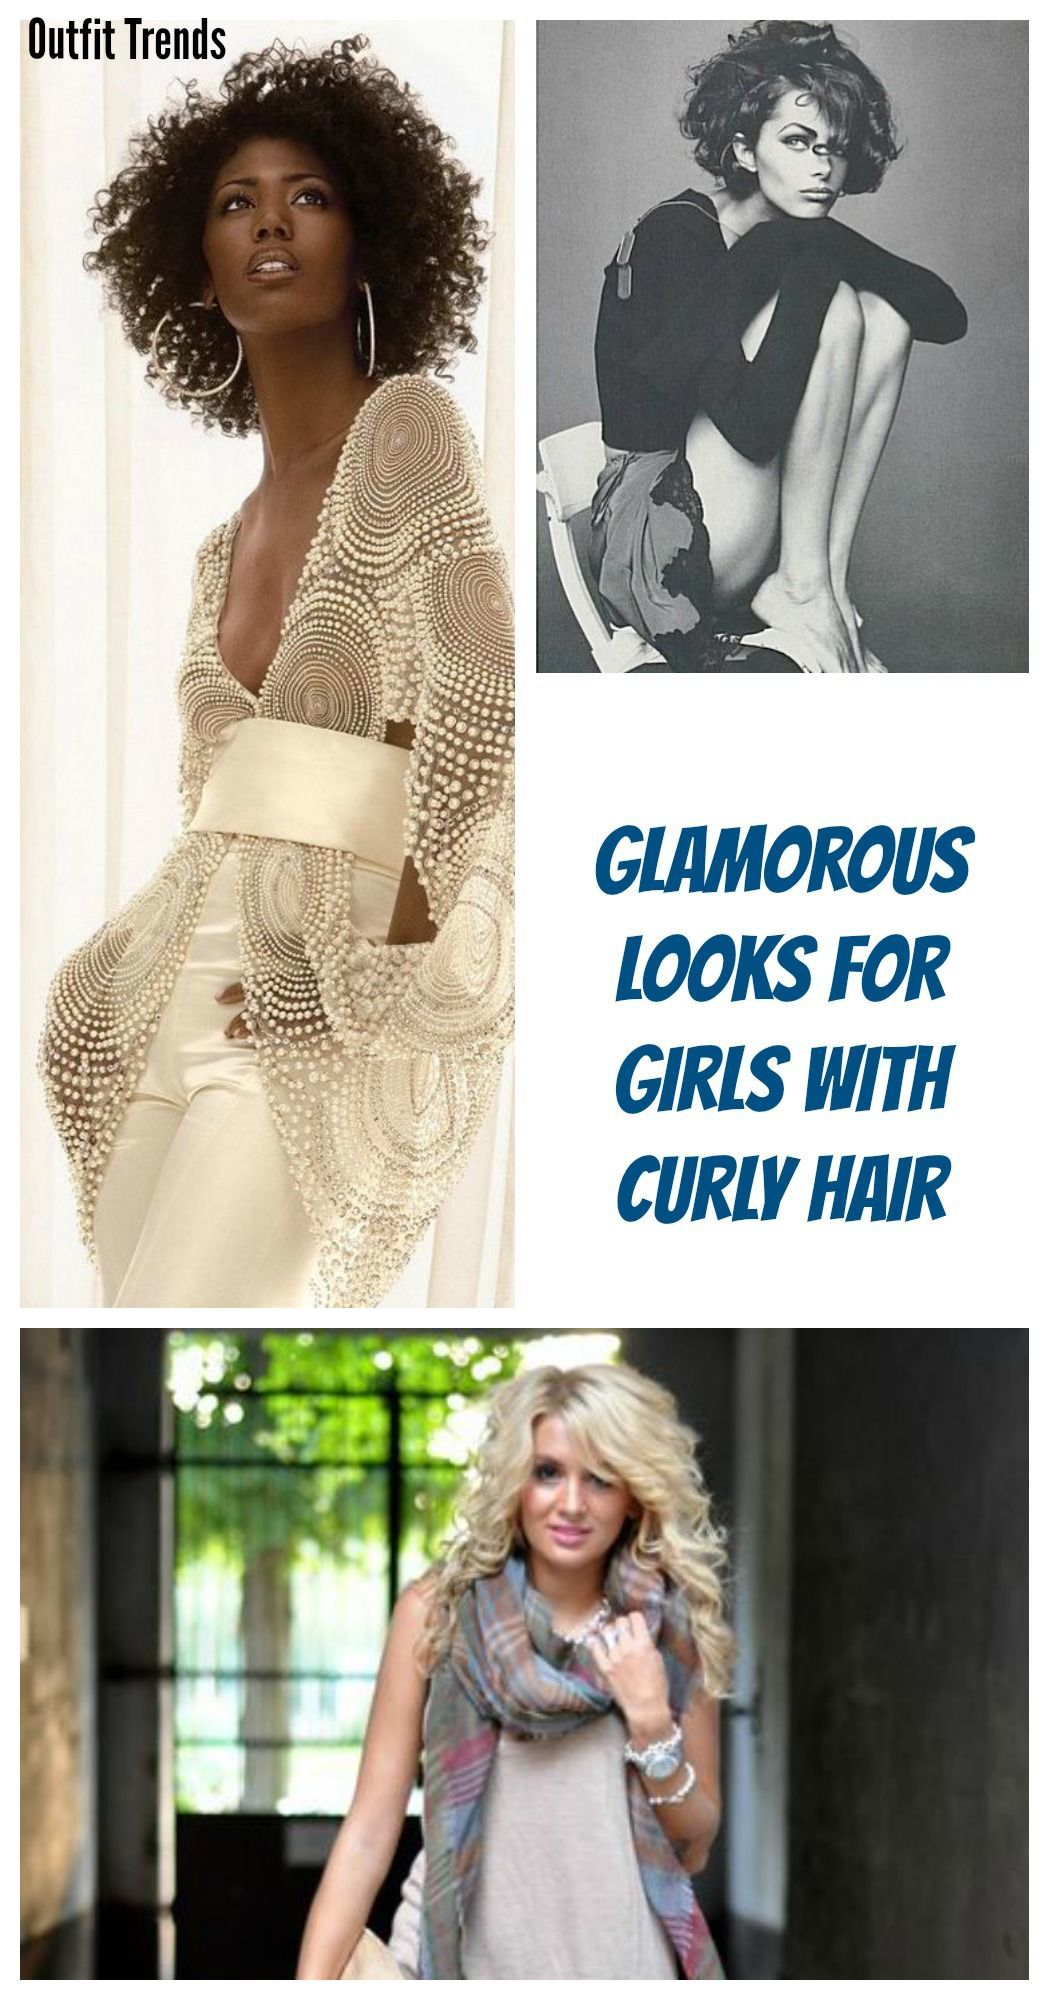 643f5e942edd 25 Cute Outfits for Curly Hair Women for Glamorous Look - Cheap ...